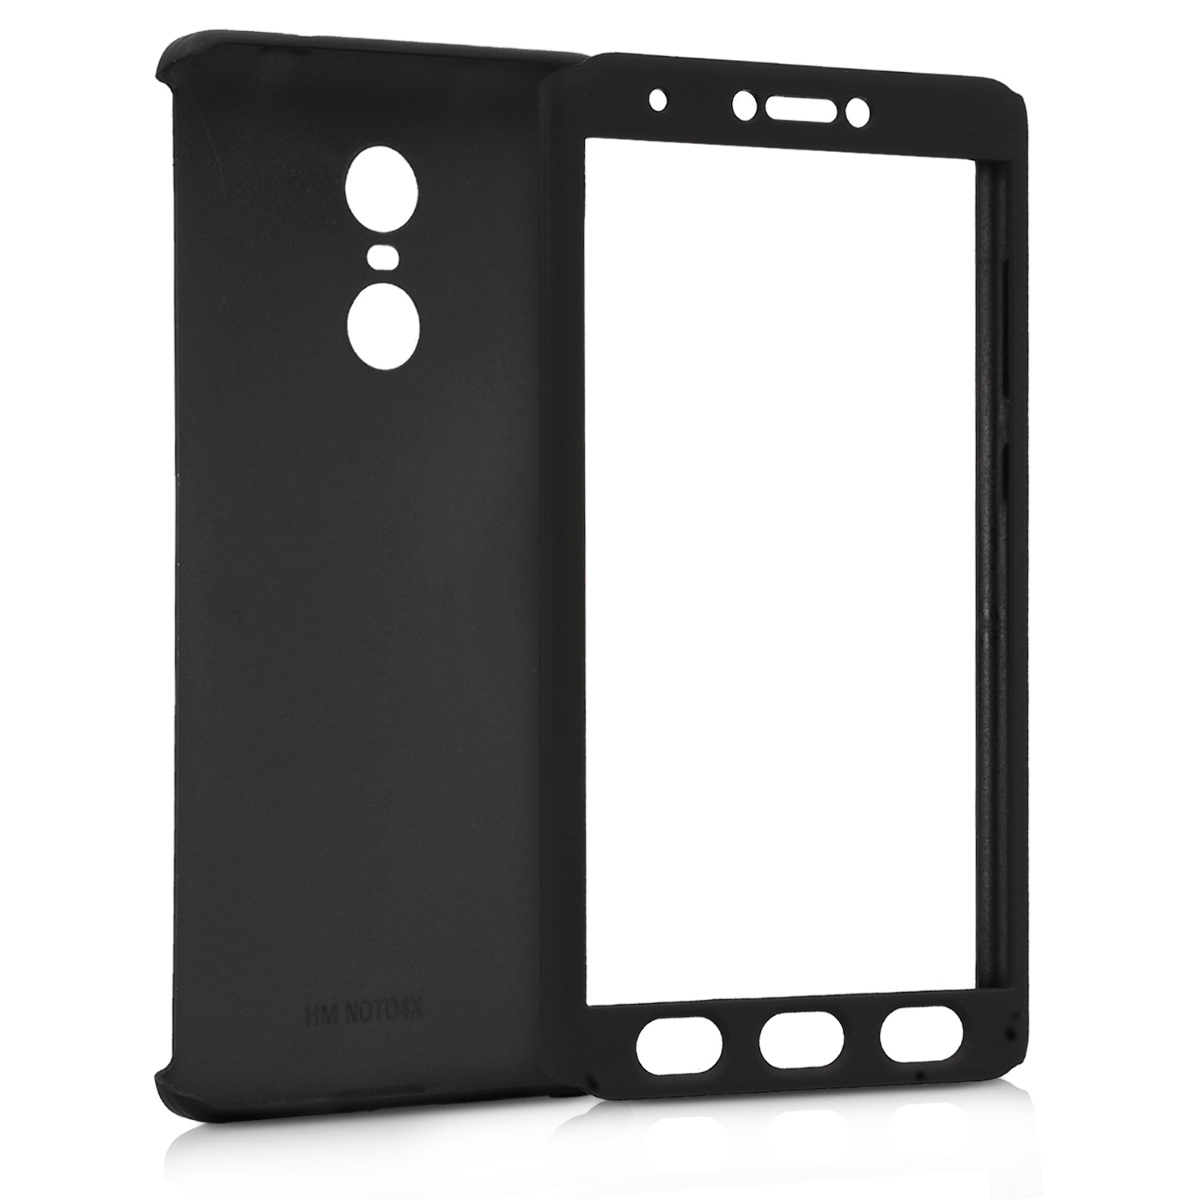 Full Body Case With Screen Protector For Xiaomi Redmi Note 4 4x 64 Kwmobile Cover Shockproof Protective Metallic Black